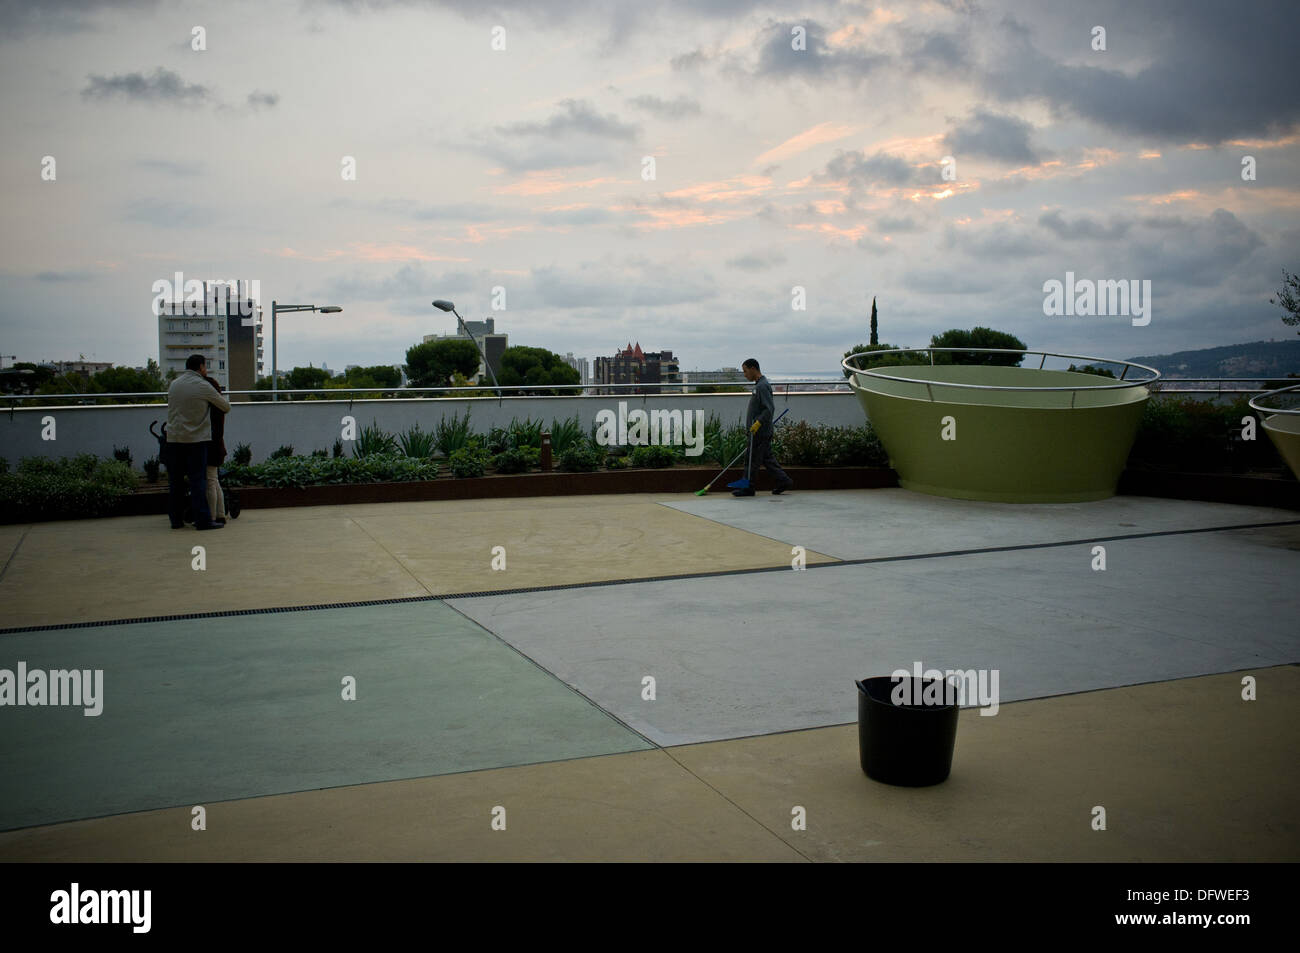 Sant Joan de Deu Children's Hospital terrace in Barcelona, Spain. - Stock Image